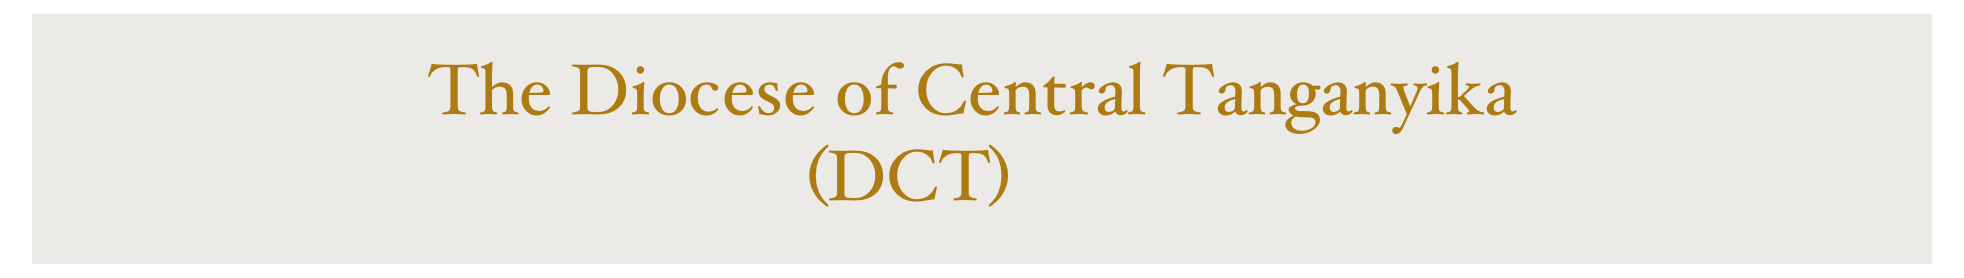 The Diocese of Central Tanganyika 